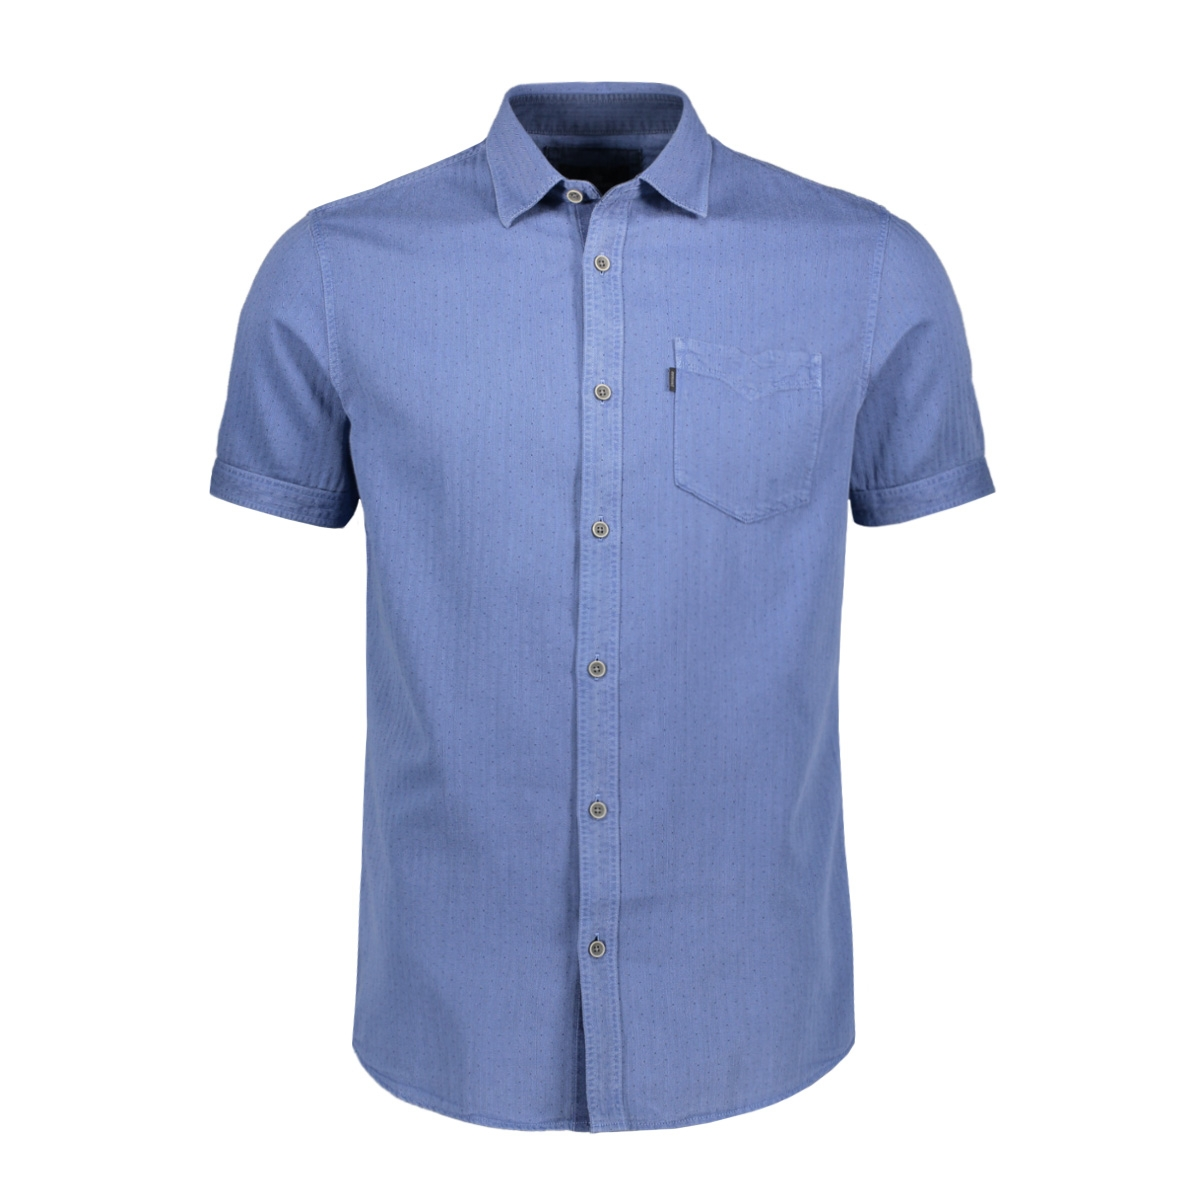 short sleeve shirt vsis202234 vanguard overhemd 5036